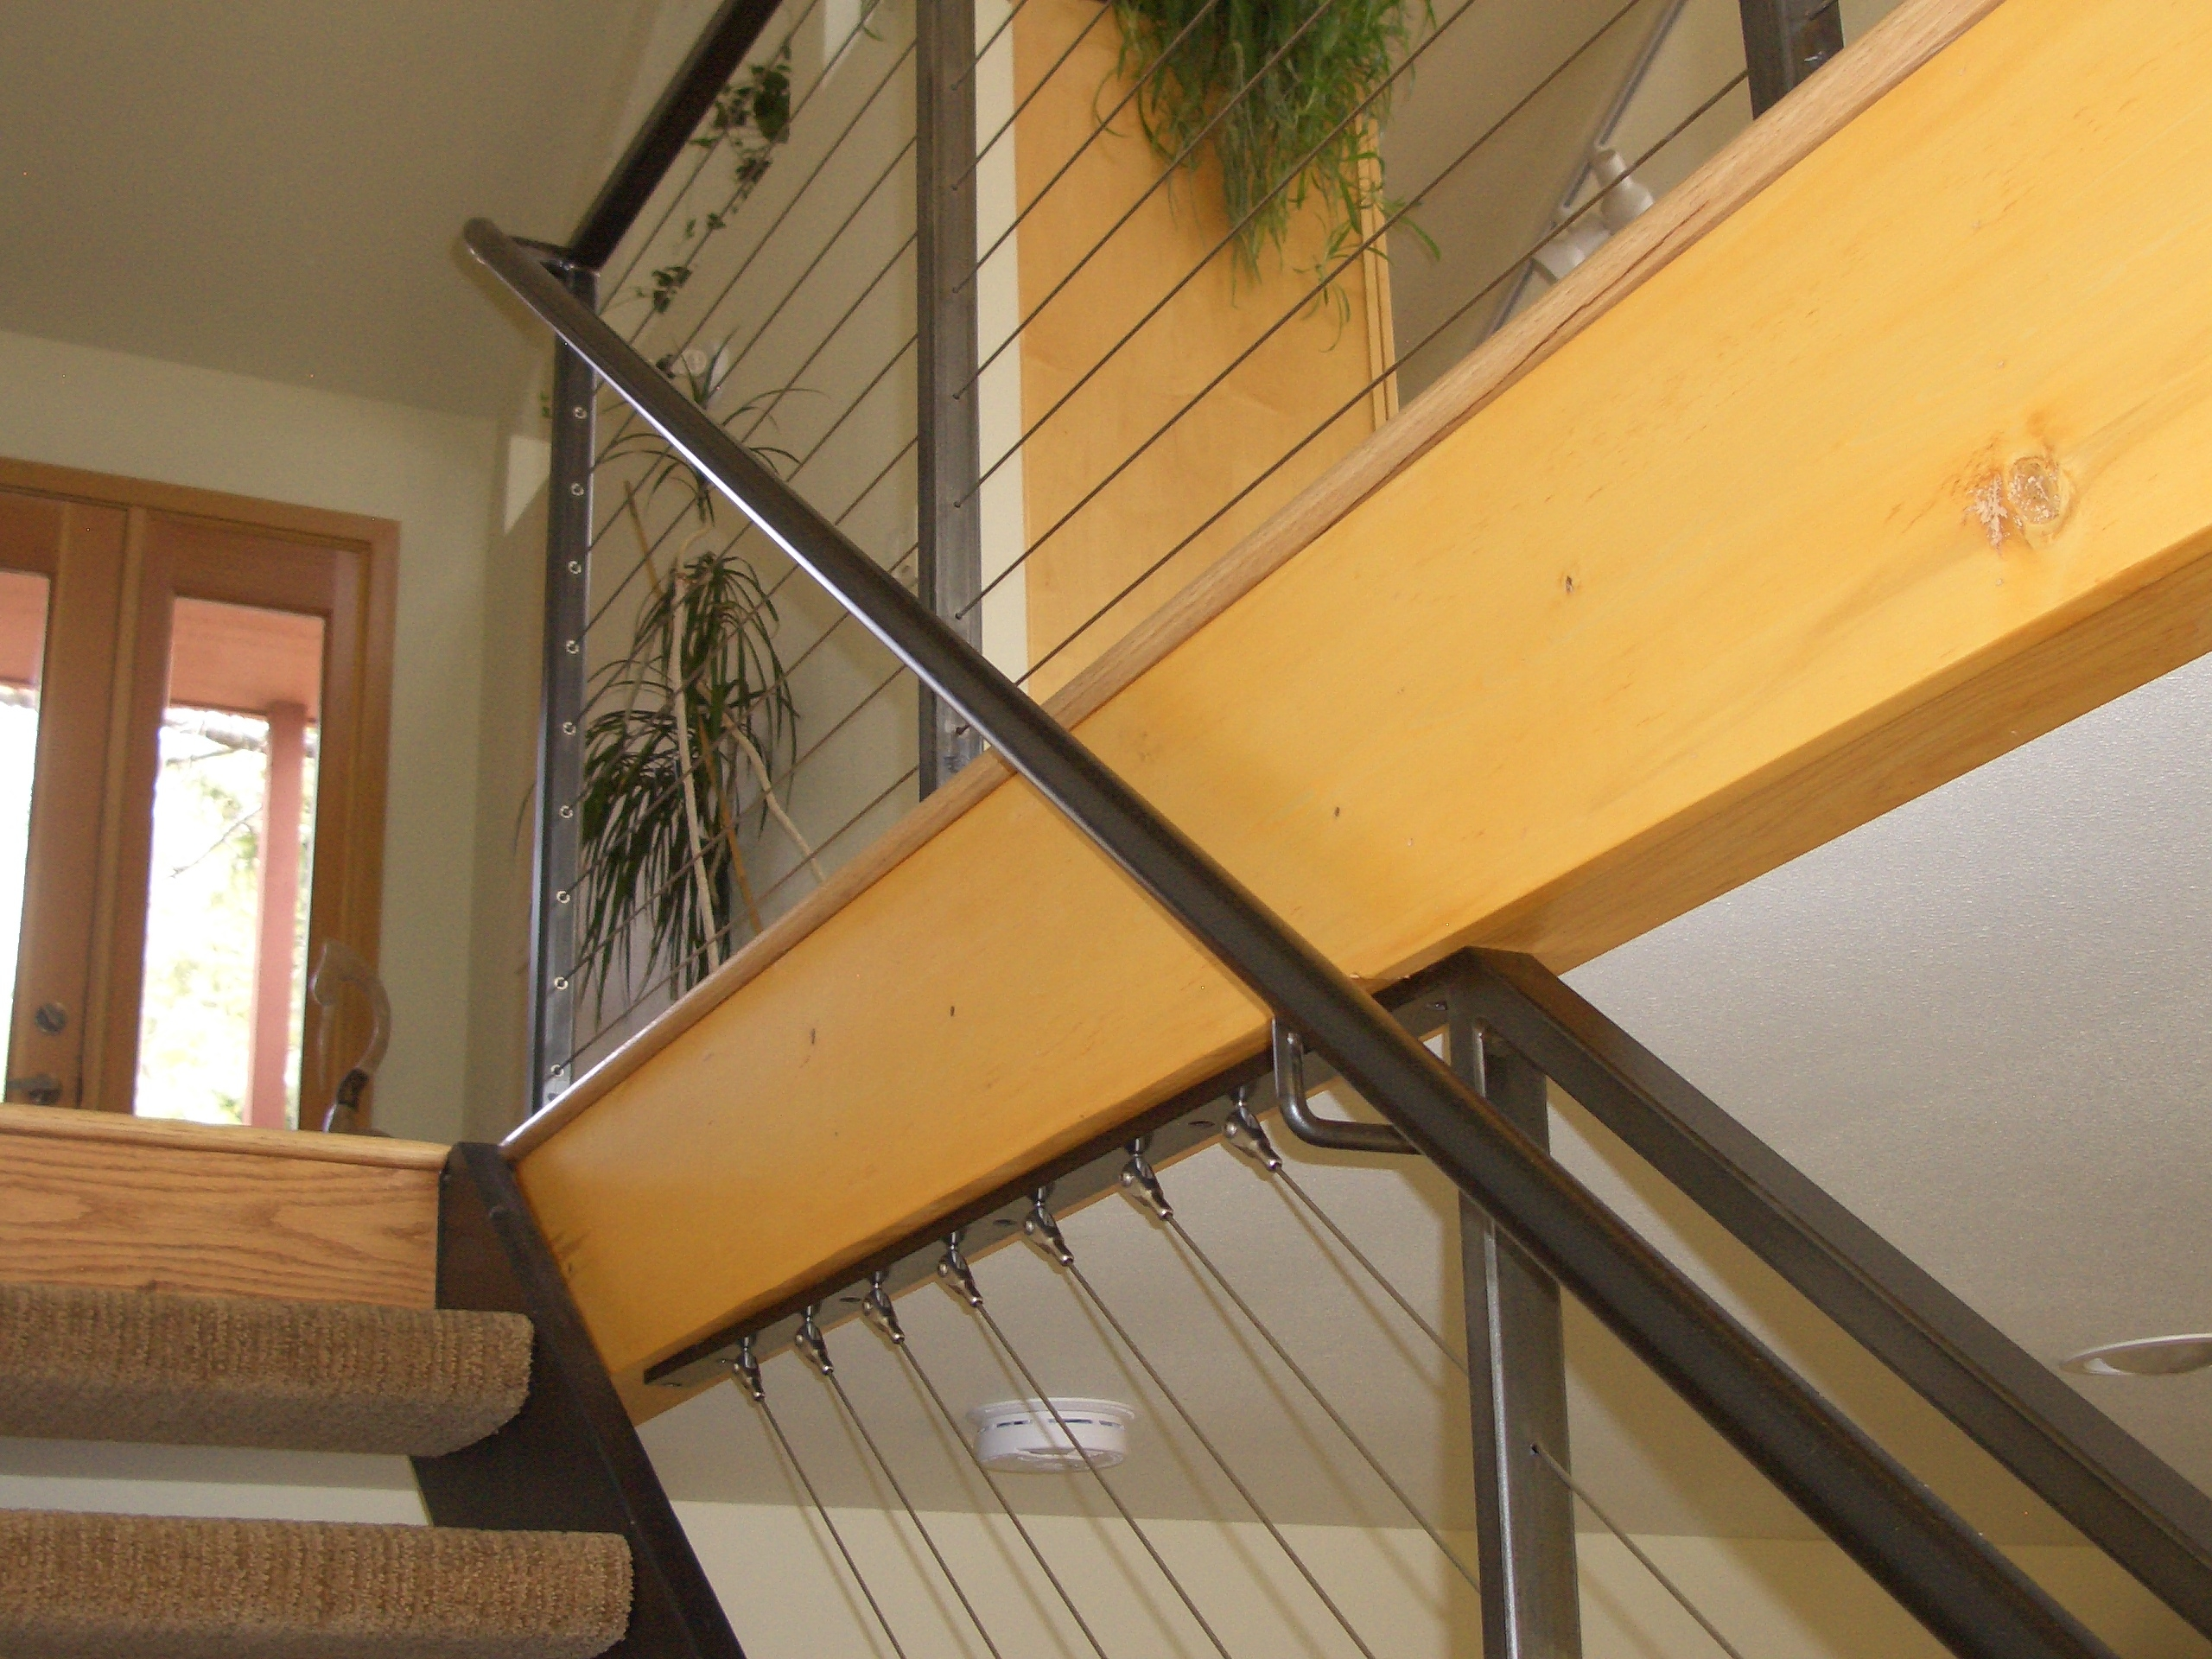 Interior Cable Railing With Continuous Stair Hand Rail Mclean | Cable Stair Railing Indoor | Exterior Irregular Stair | Vertical | Wood | 90 Degree Stair | Stainless